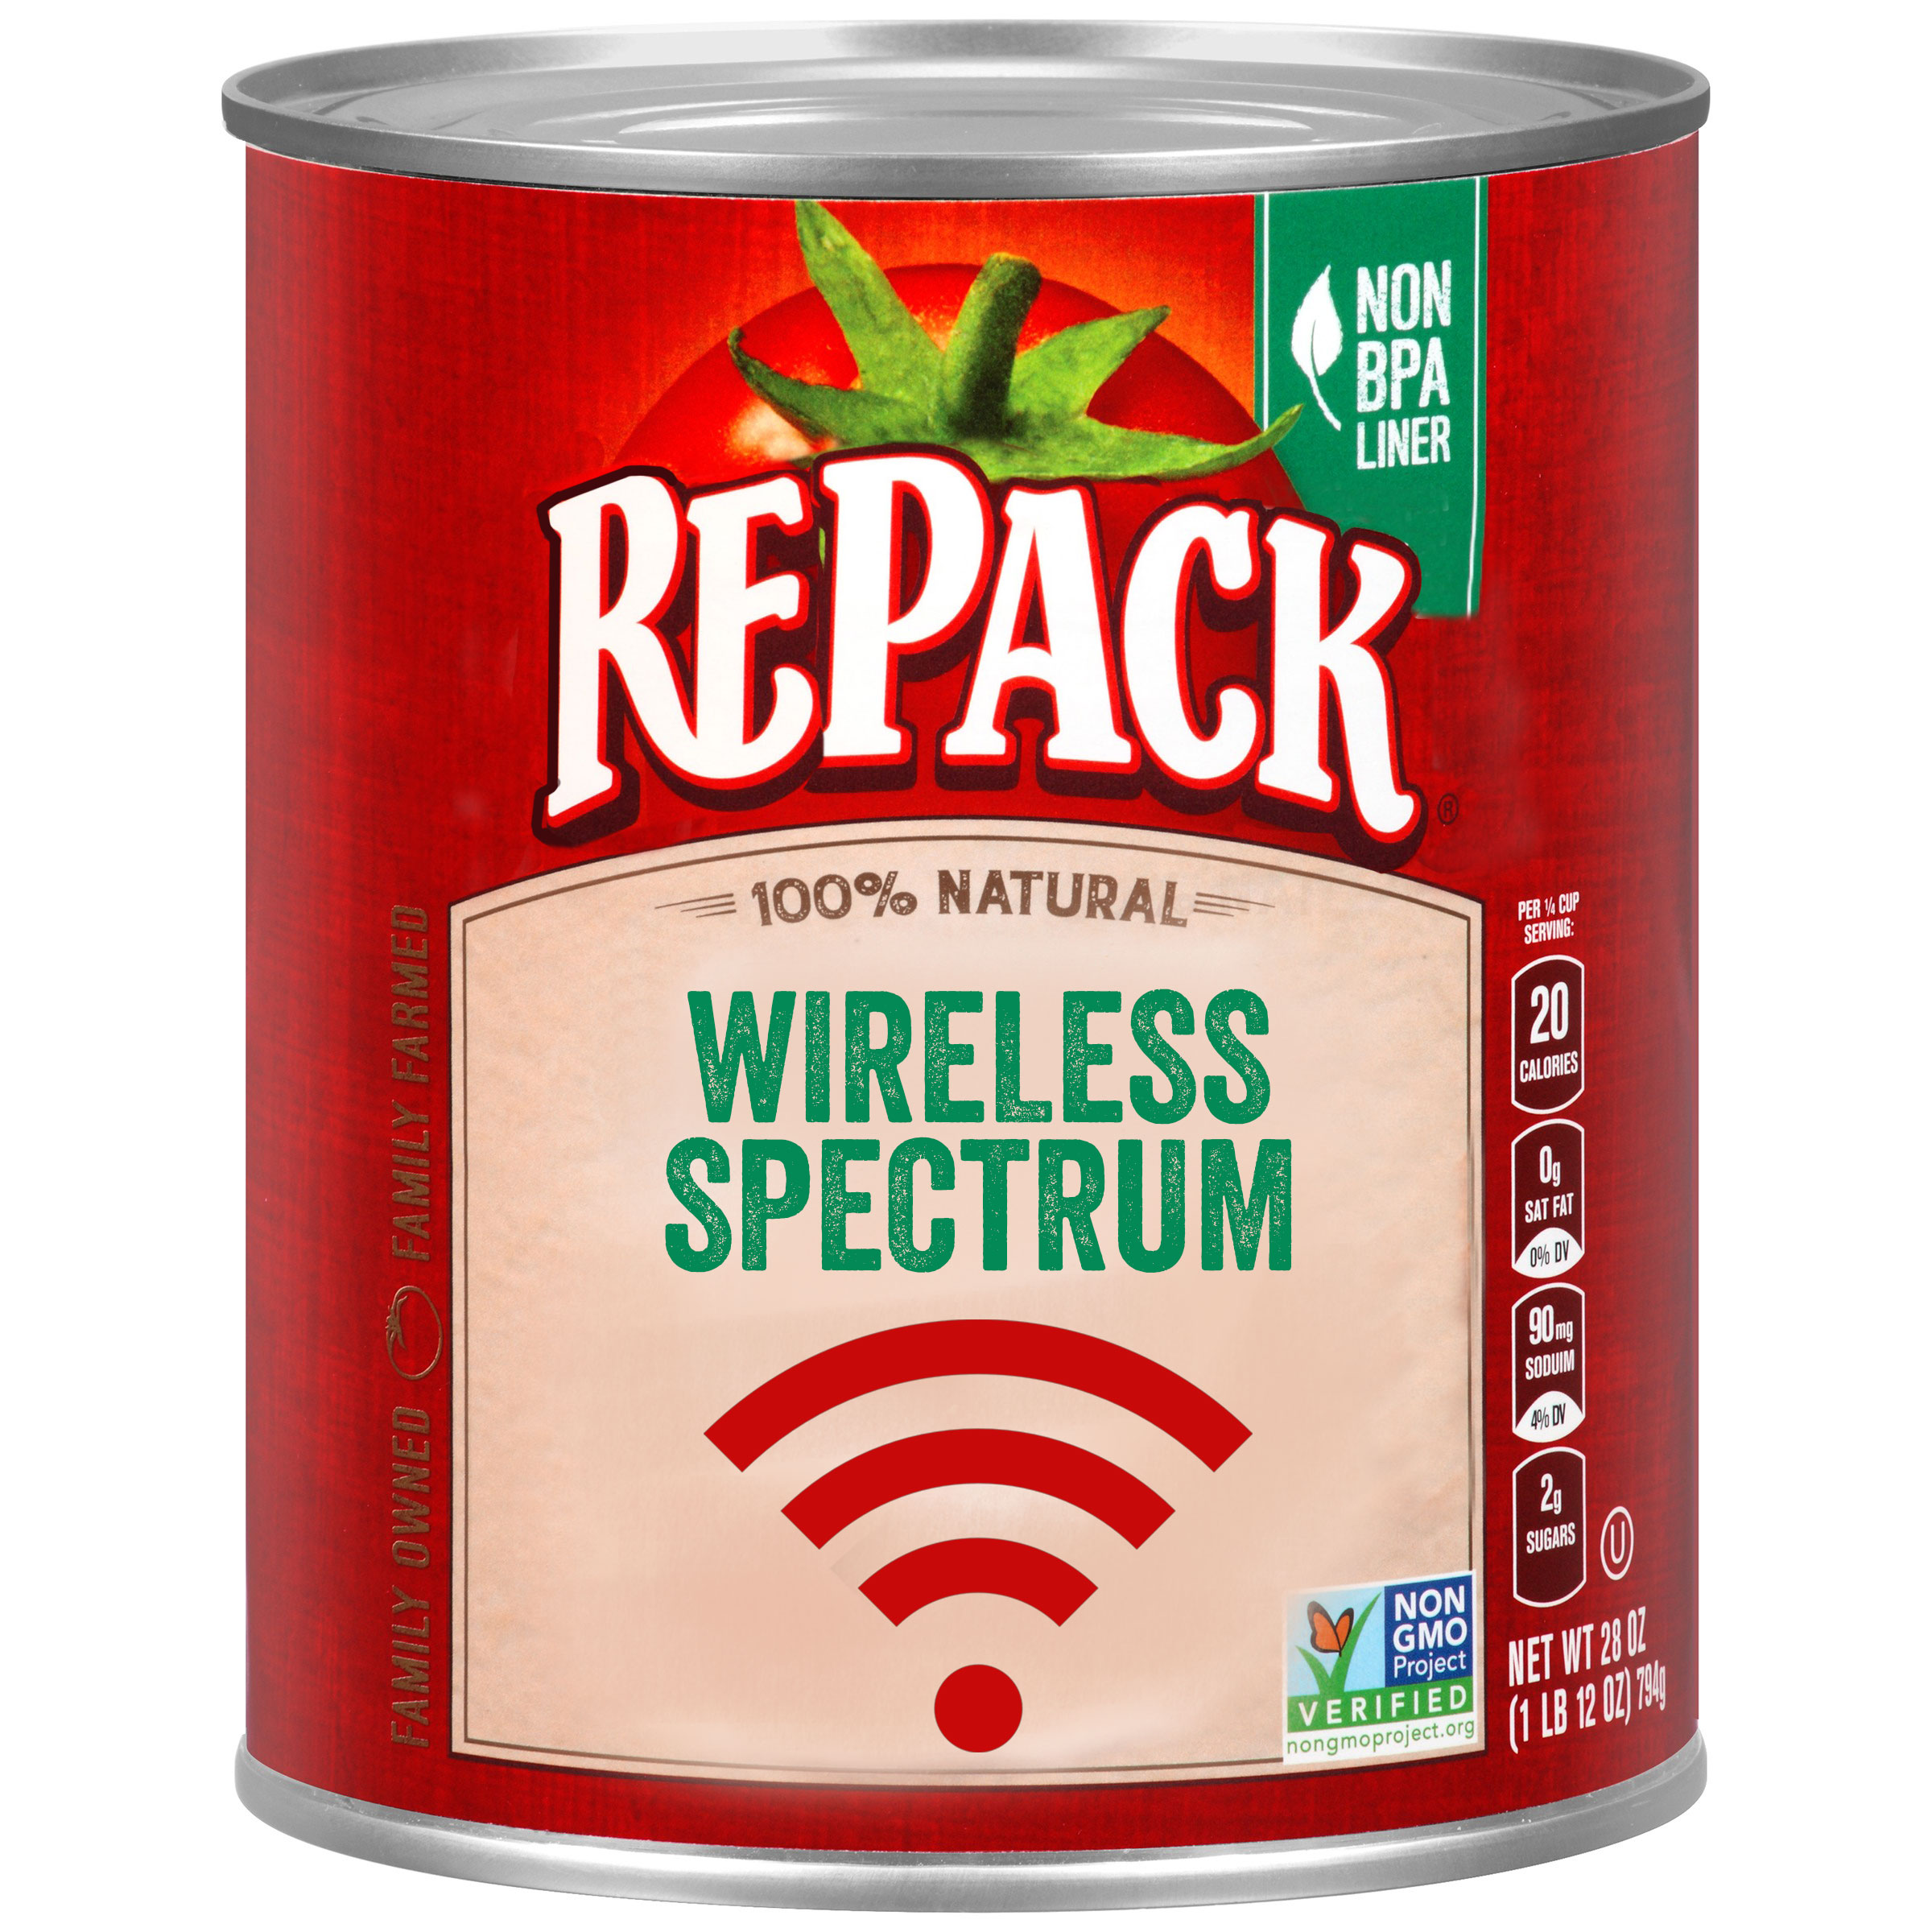 WirelessSpectrum